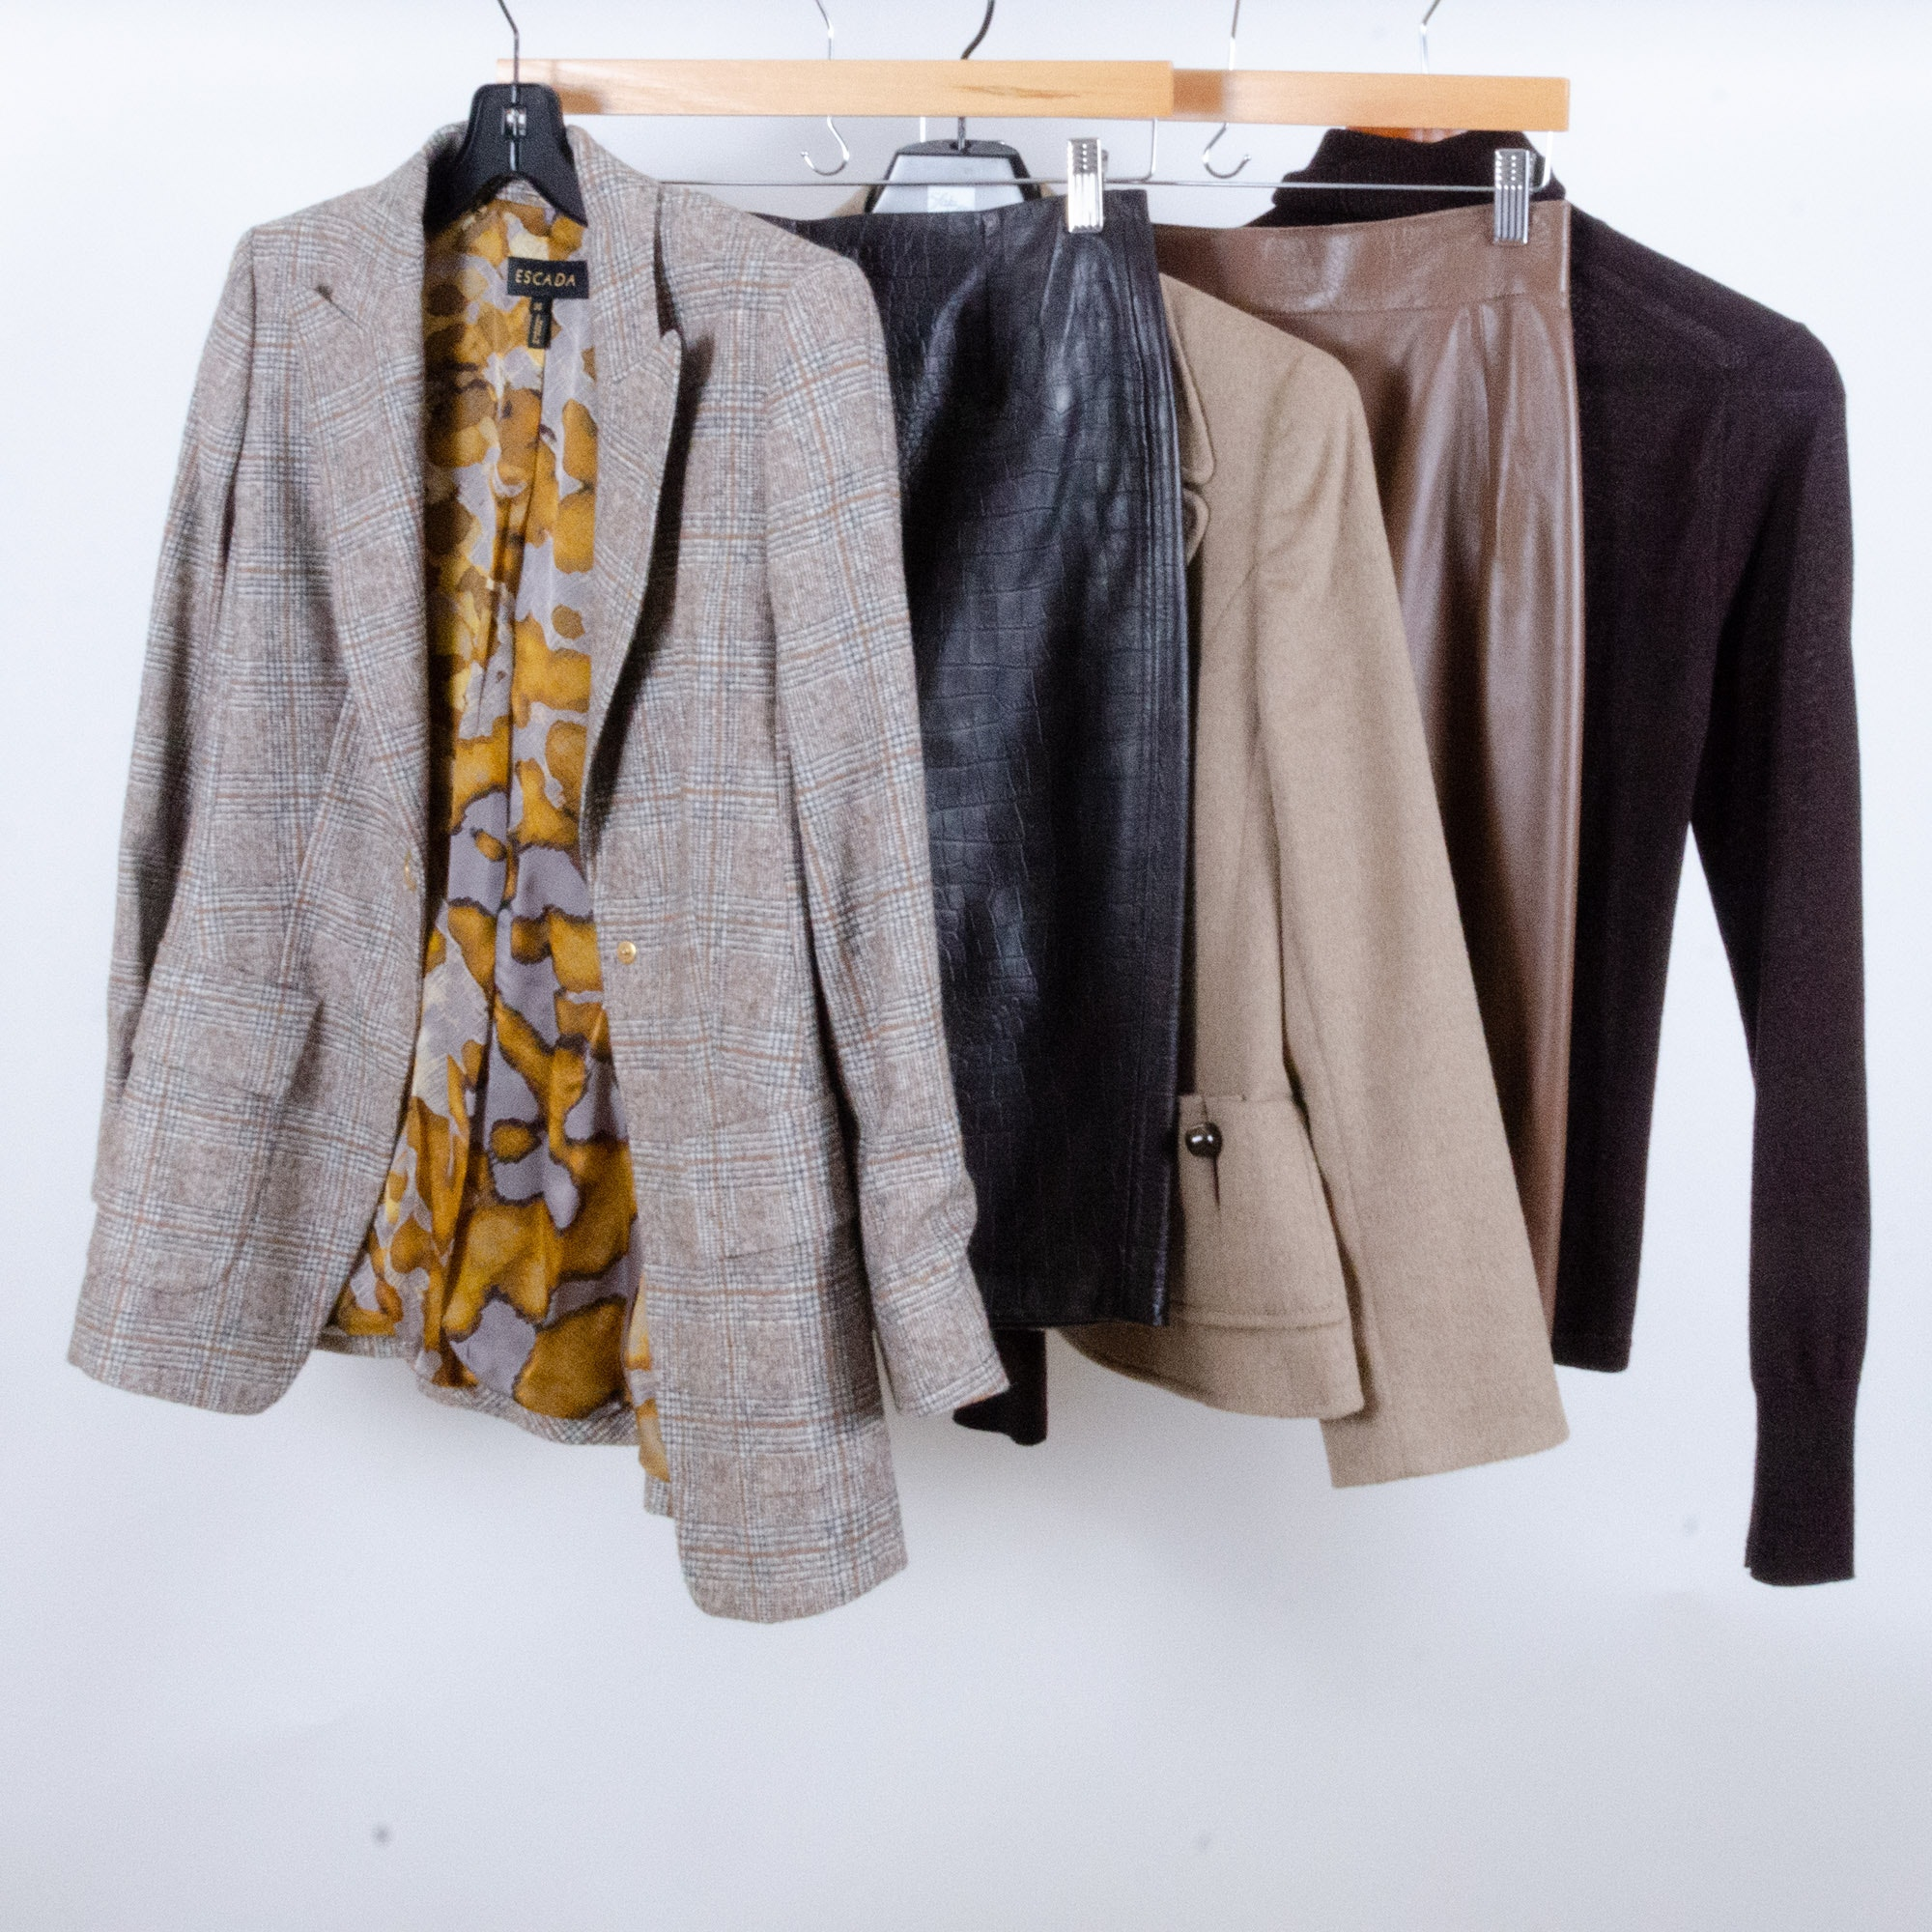 Women's Leather Skirts, Wool Jackets, Sweater, Les Copains, Akris Punto